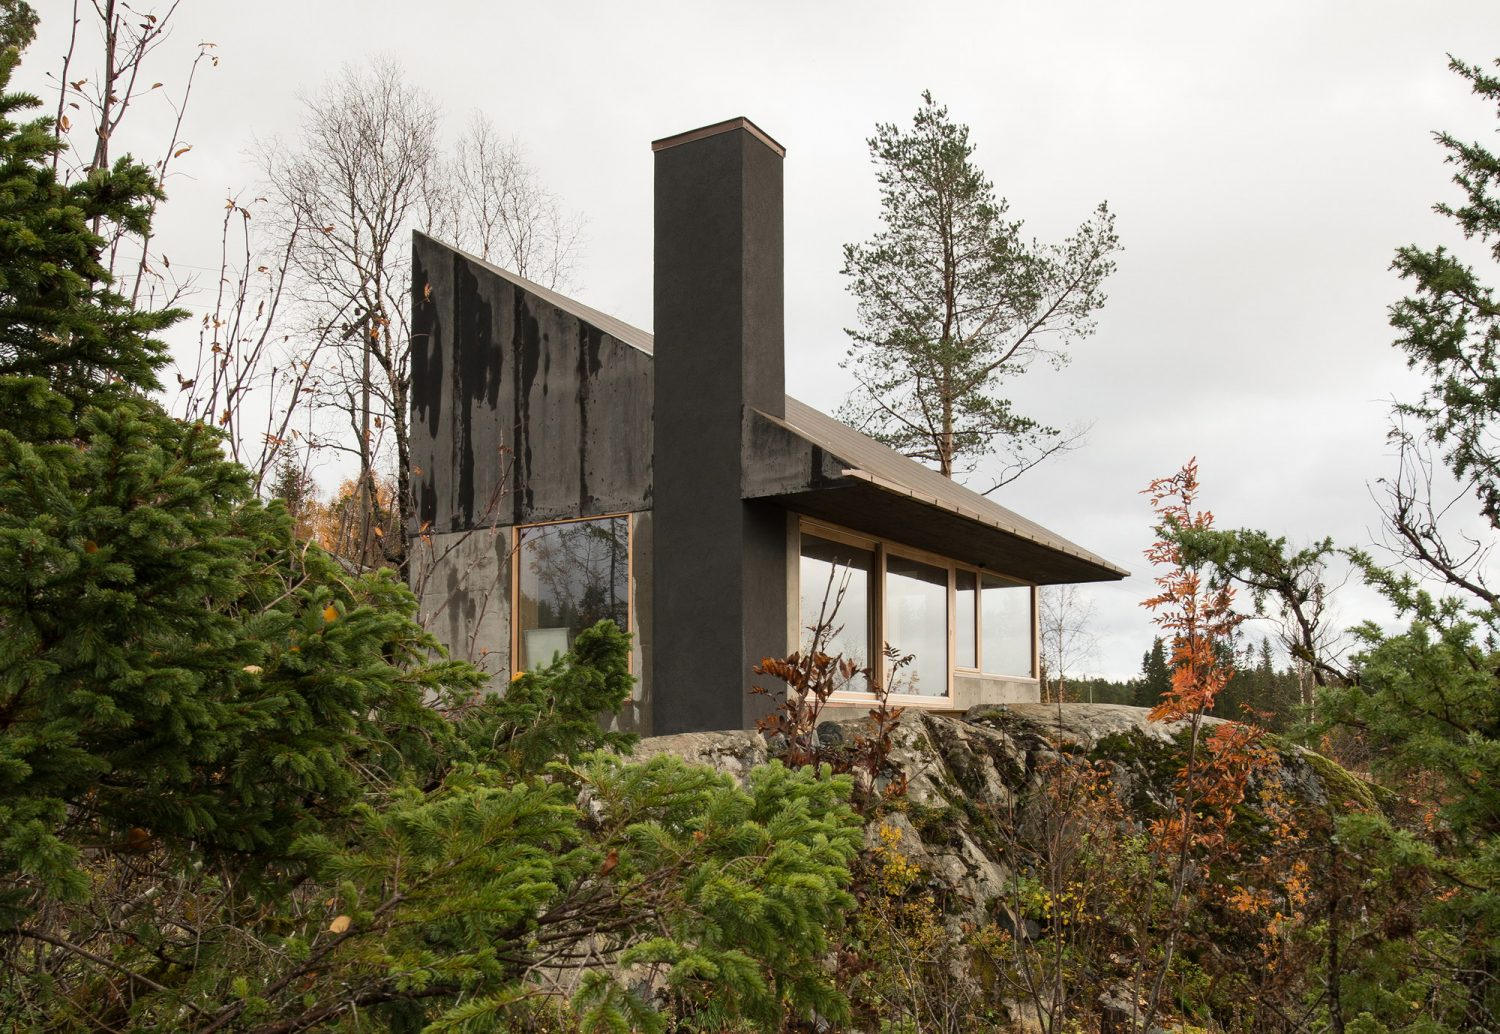 Cabin Rones by Sanden+Hodnekvam Architects